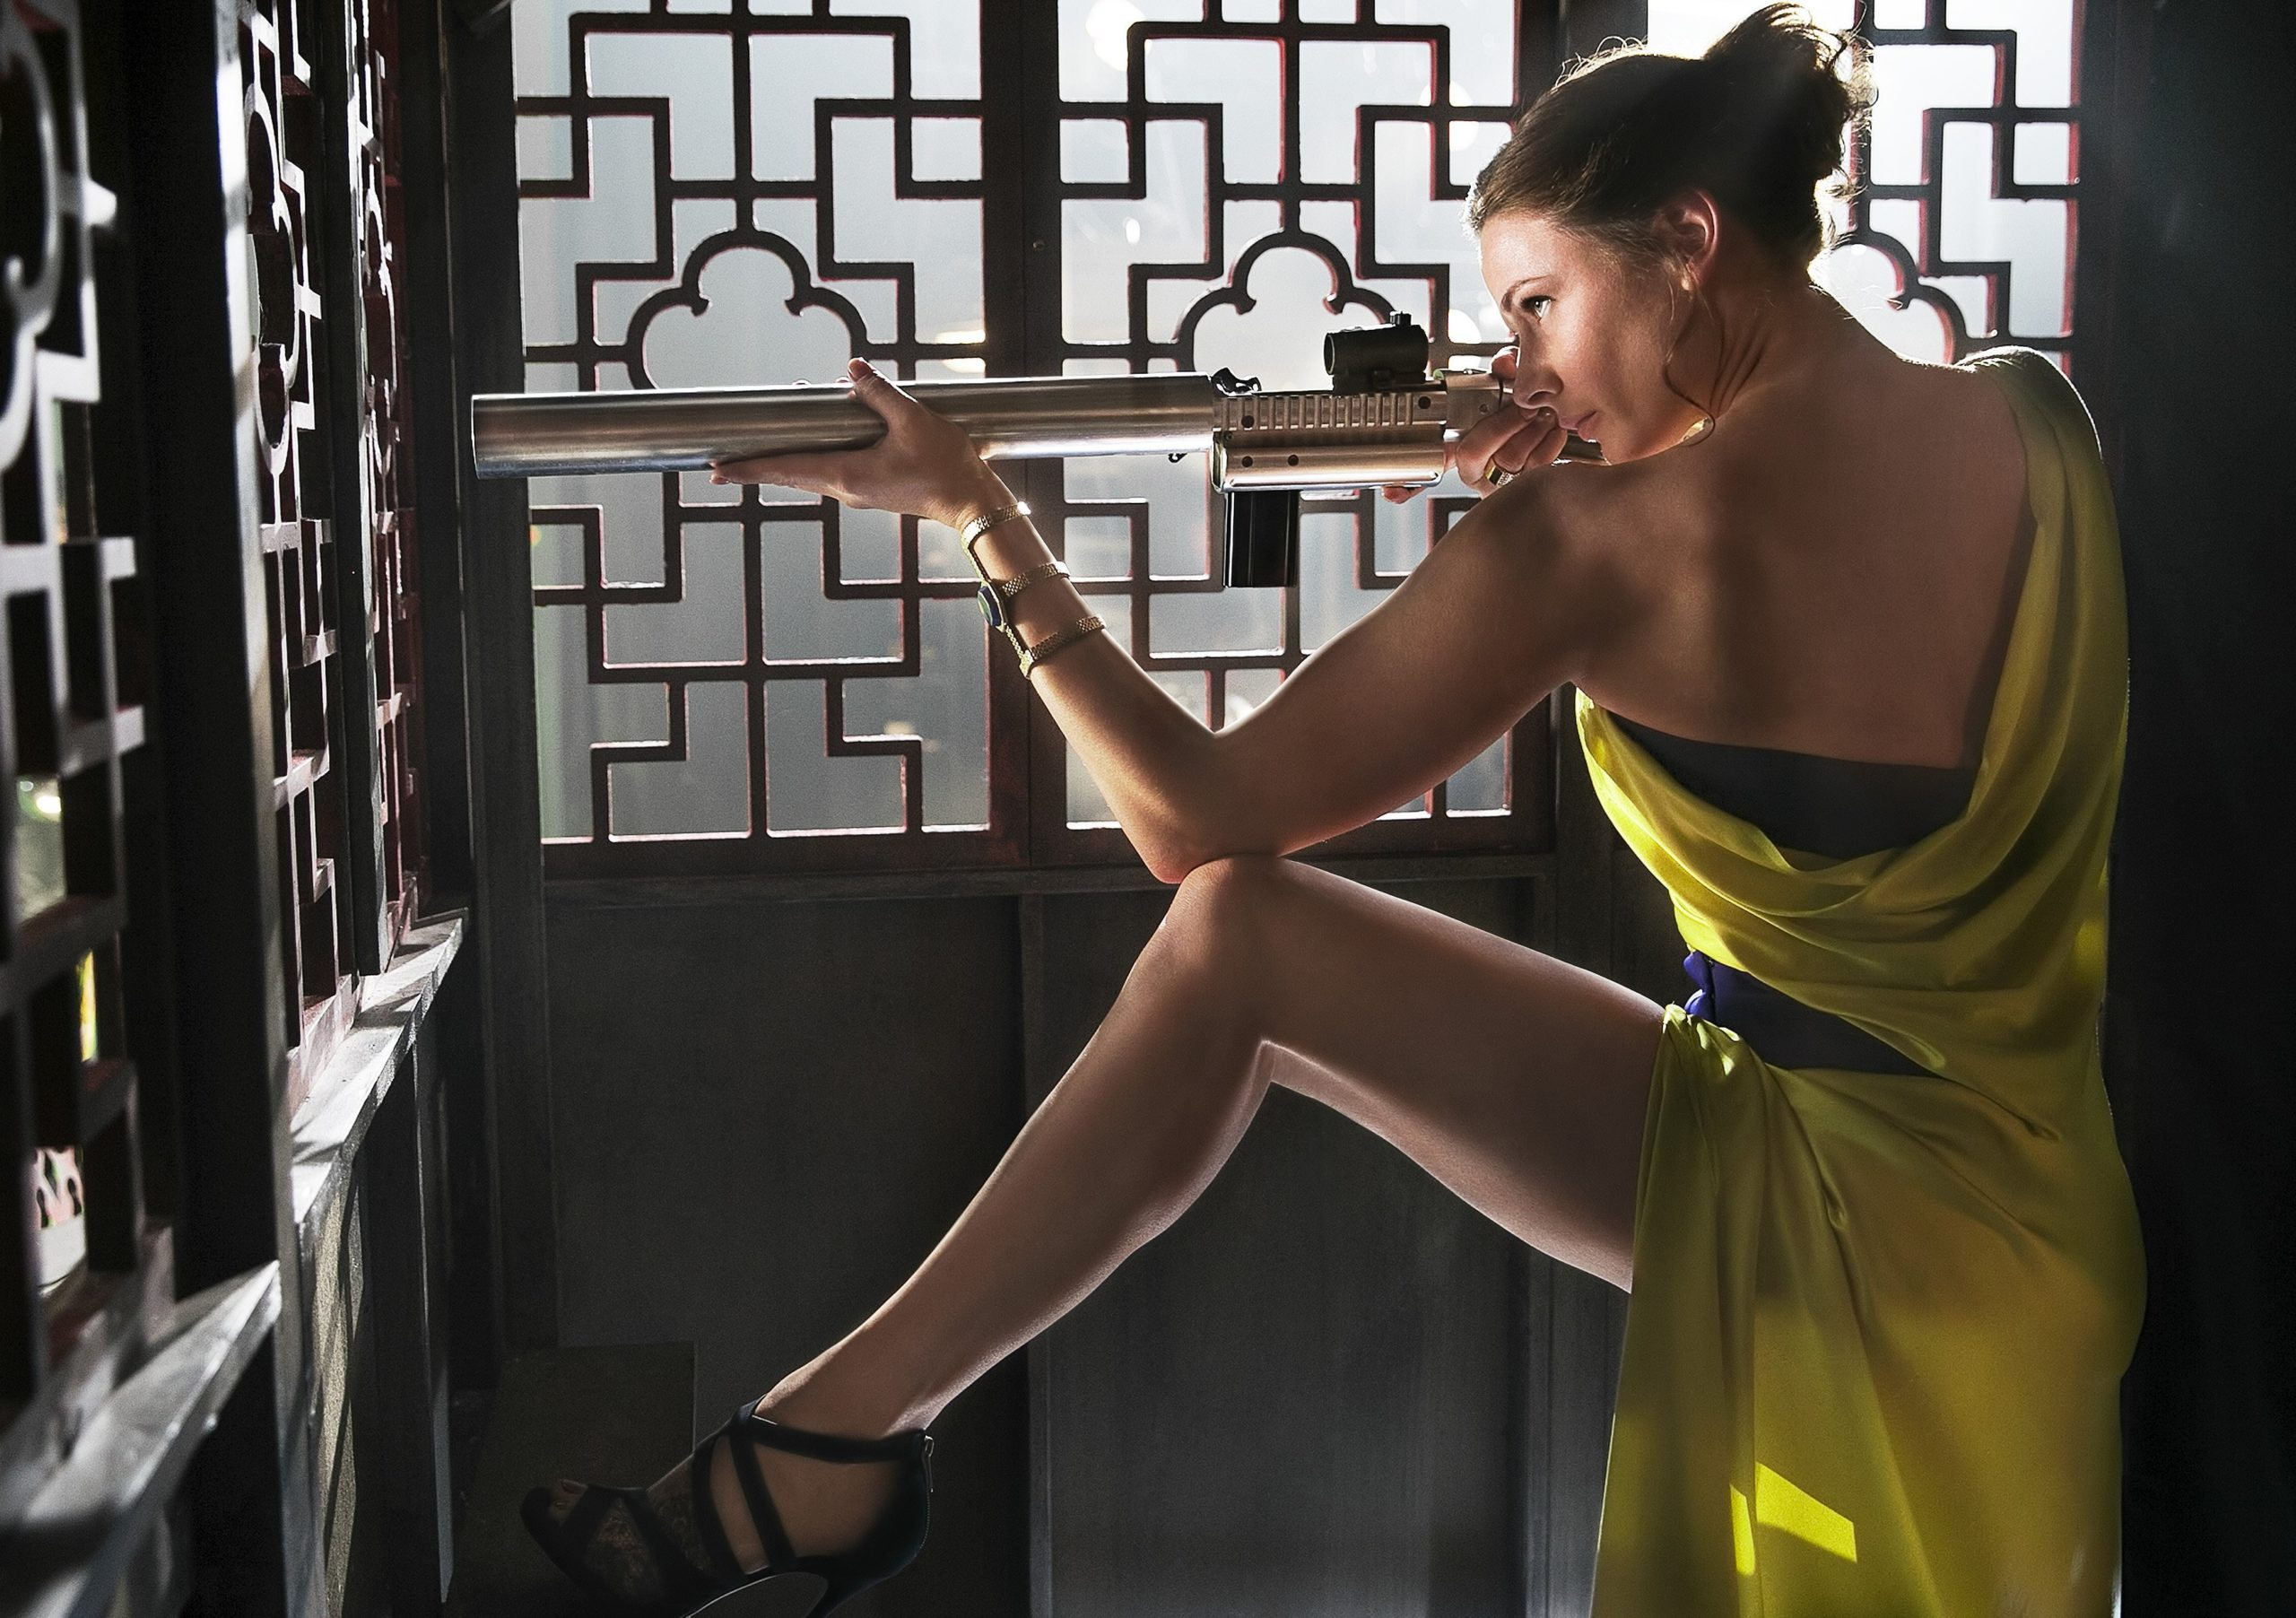 Photo du film Mission: Impossible Rogue Nation réalisé par Christopher McQuarrie, d'après un scénario écrit par Drew Pearce et Will Staples, avec Rebecca Ferguson